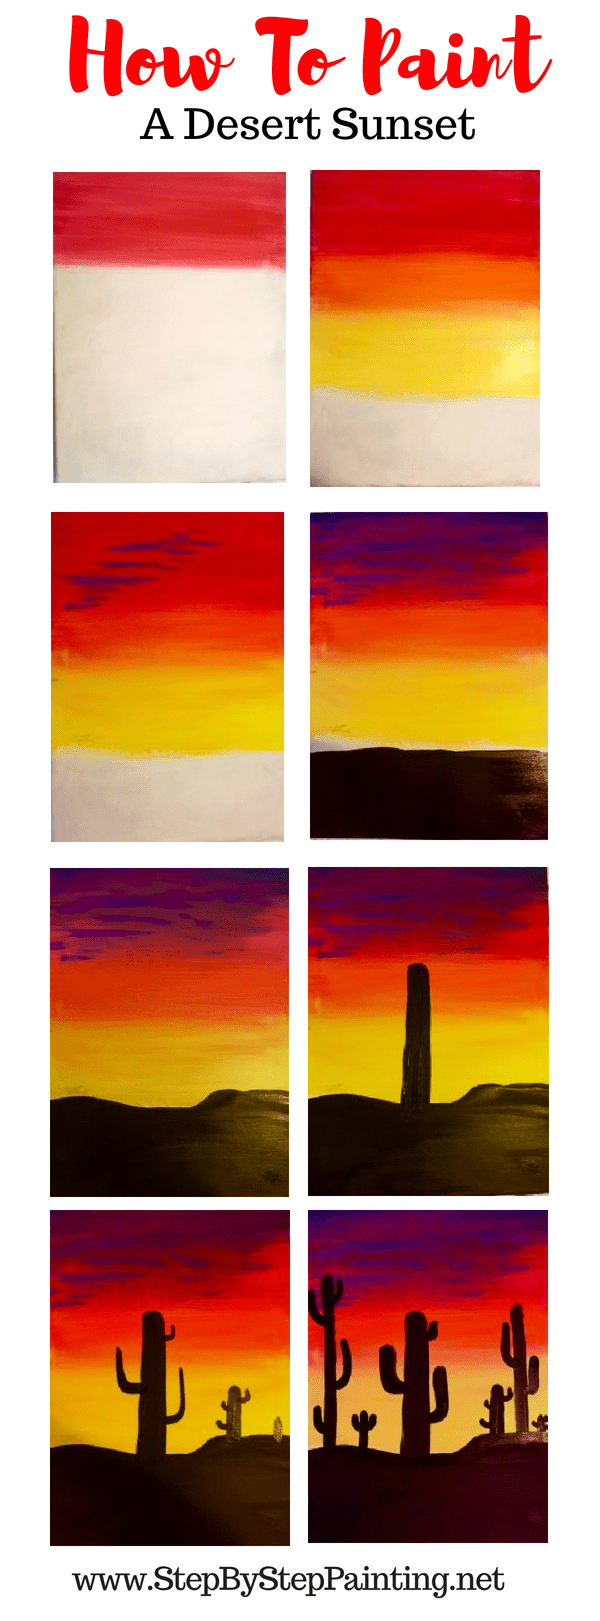 How To Paint A Cactus Silhouette Sunset - Step by Step ...